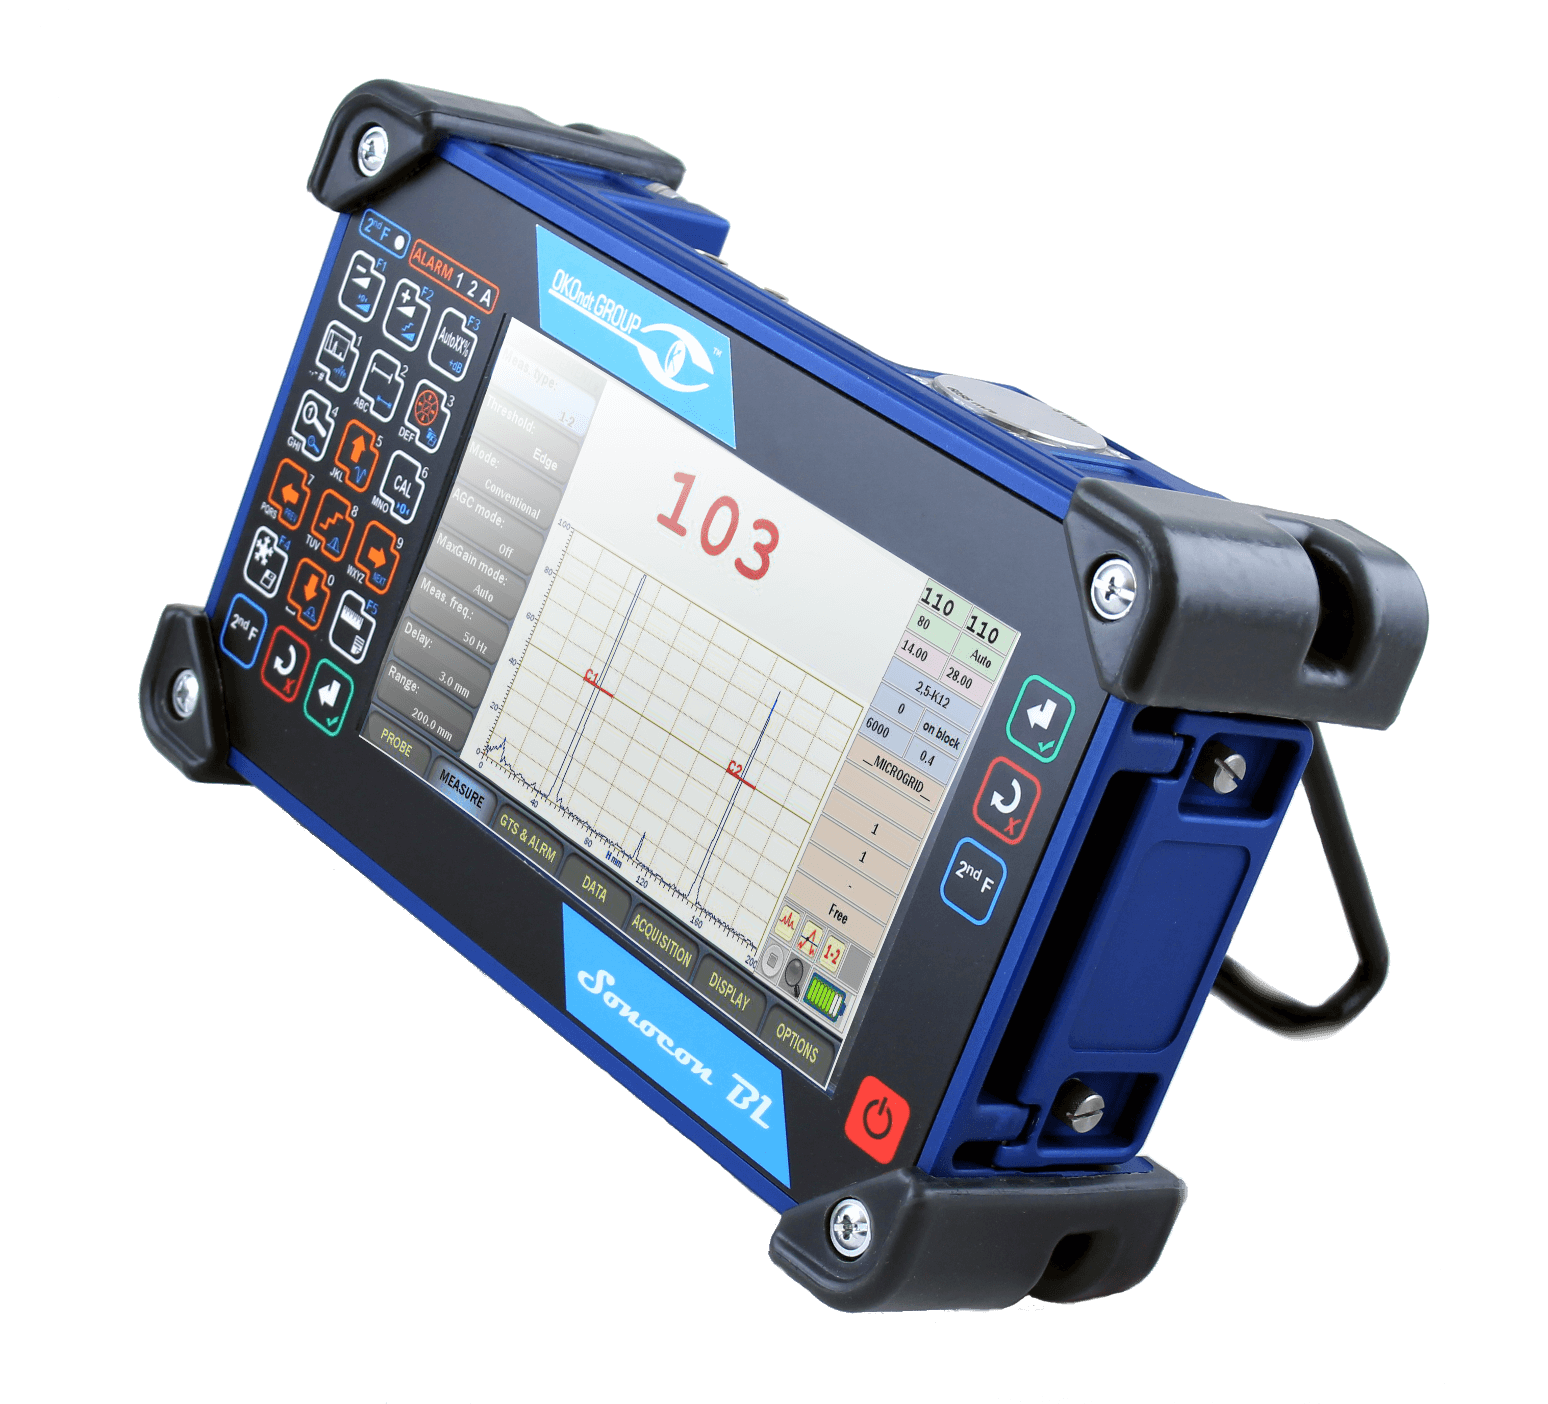 Portable ultrasonic flaw detector with a large screen Sonocon BL